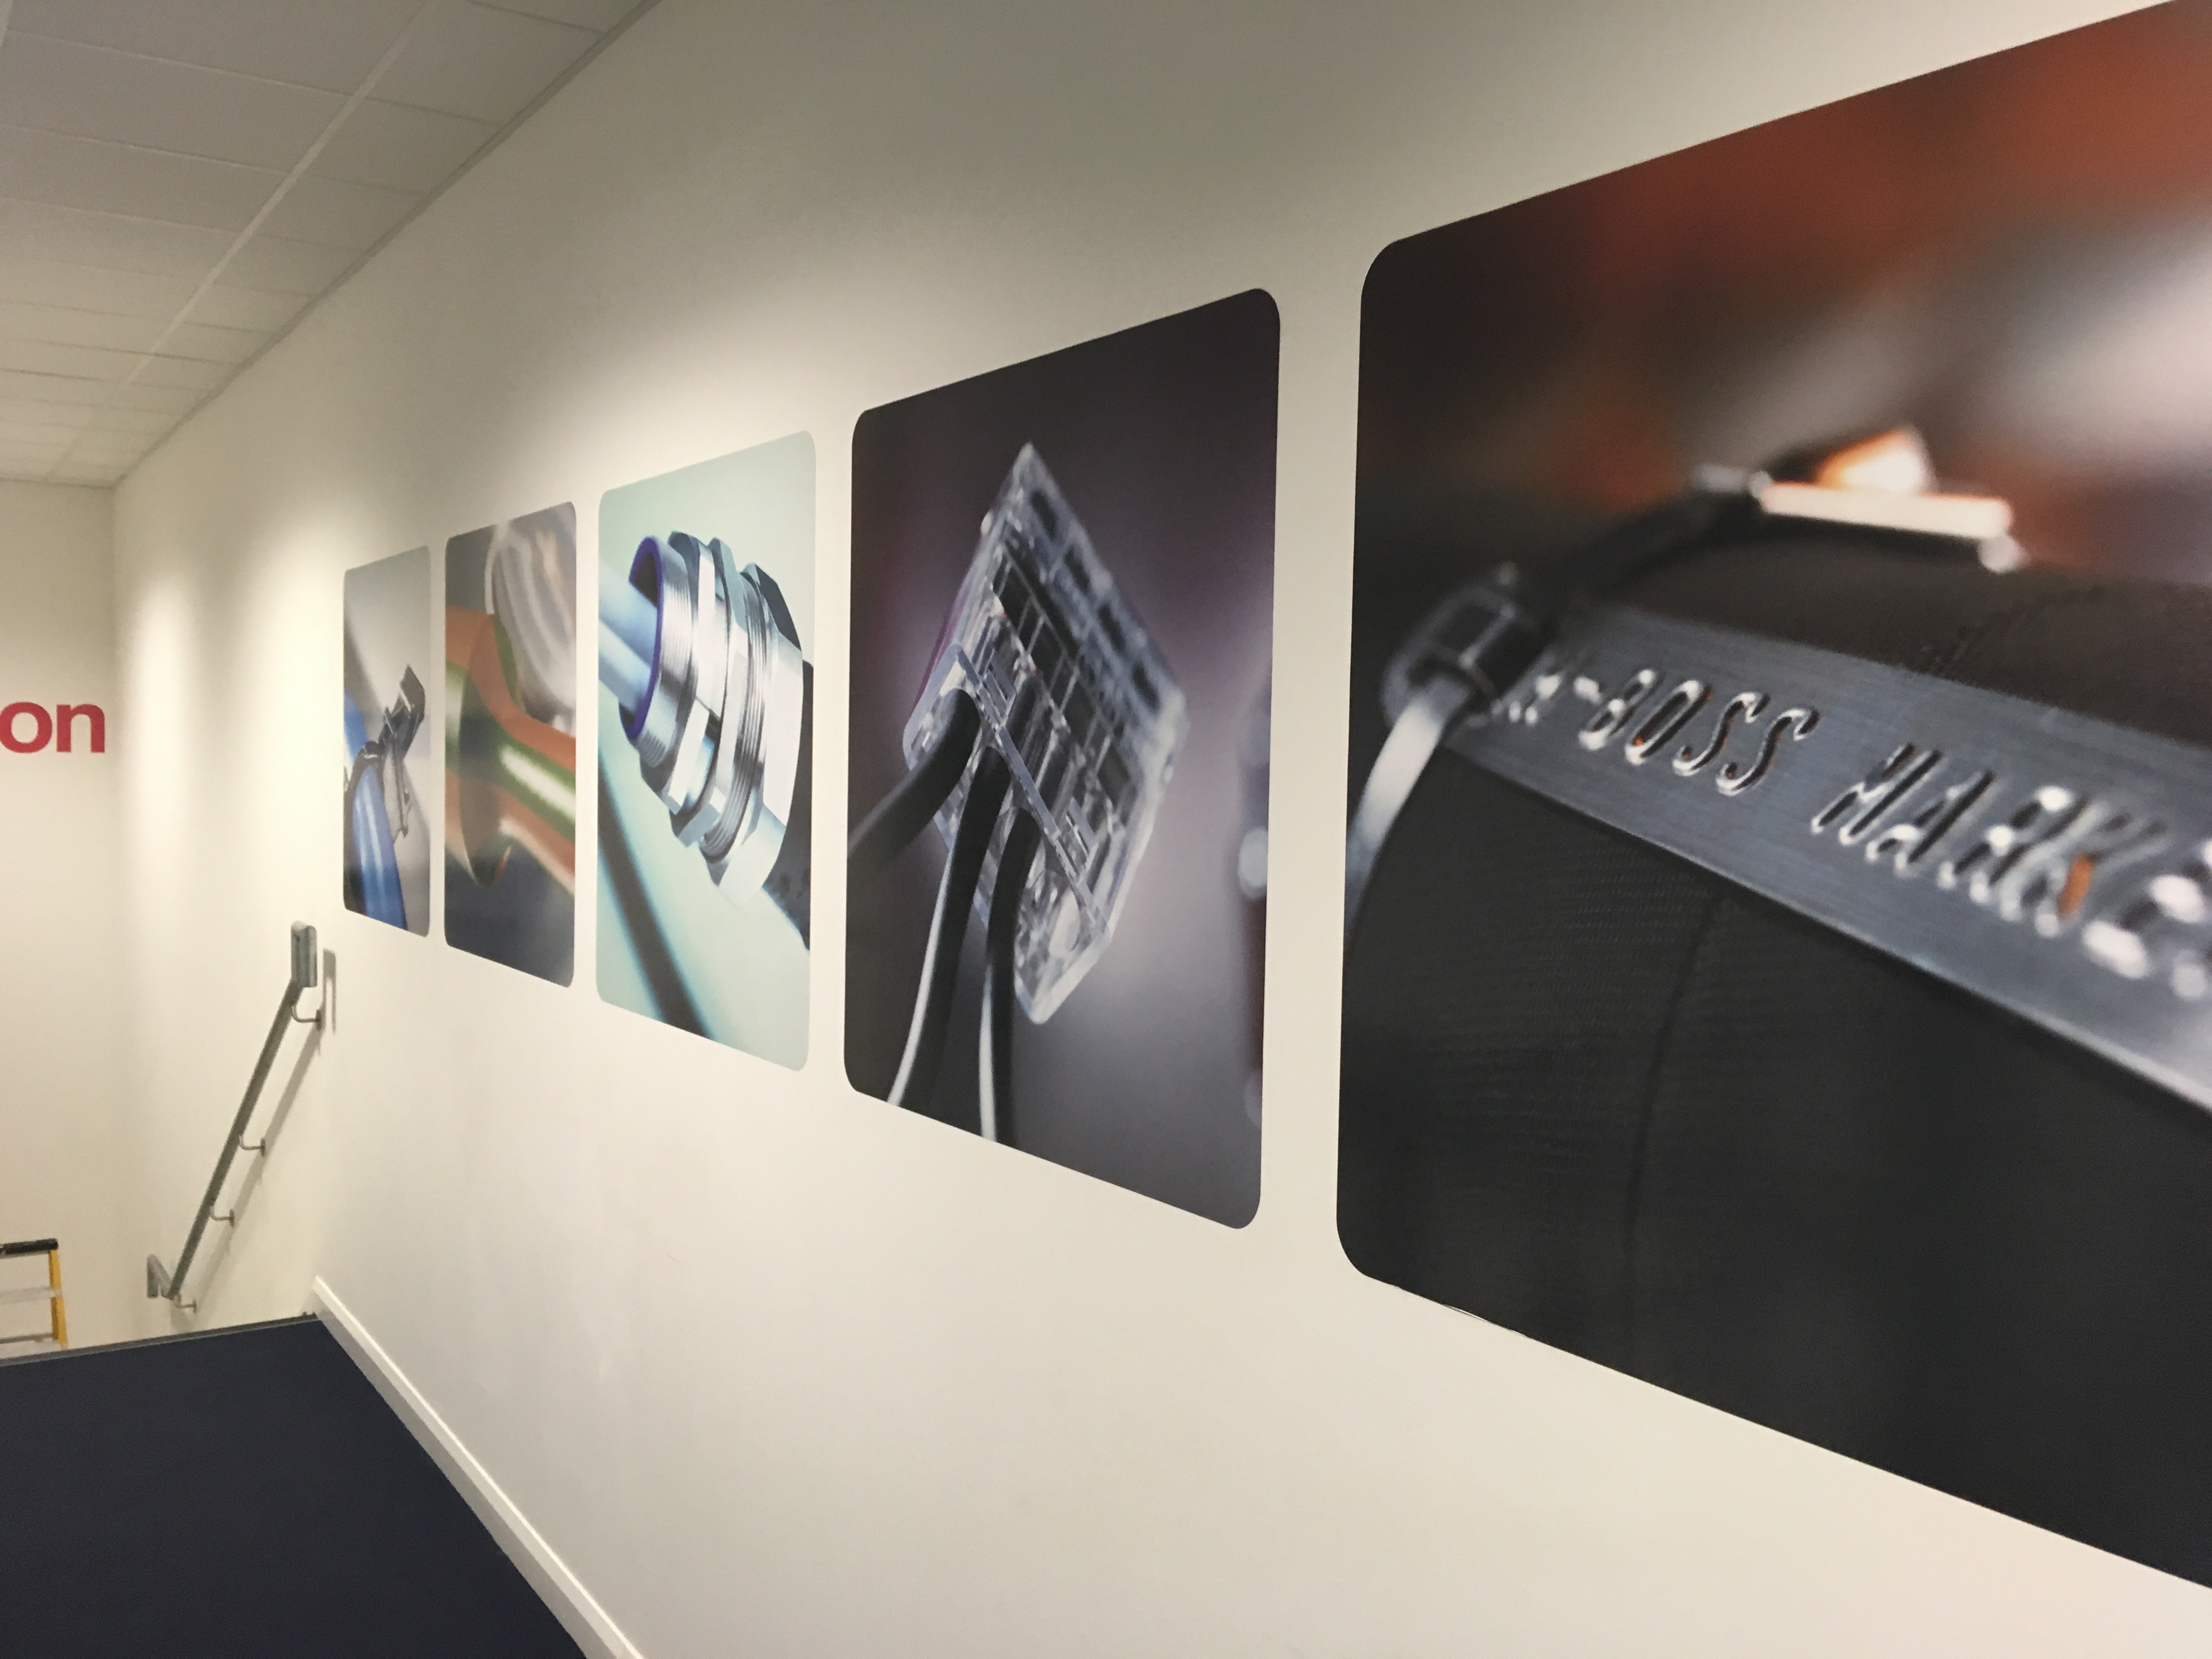 Self-adhsive wall art vinyl printed in full colour and applied to the freshly painted walls.